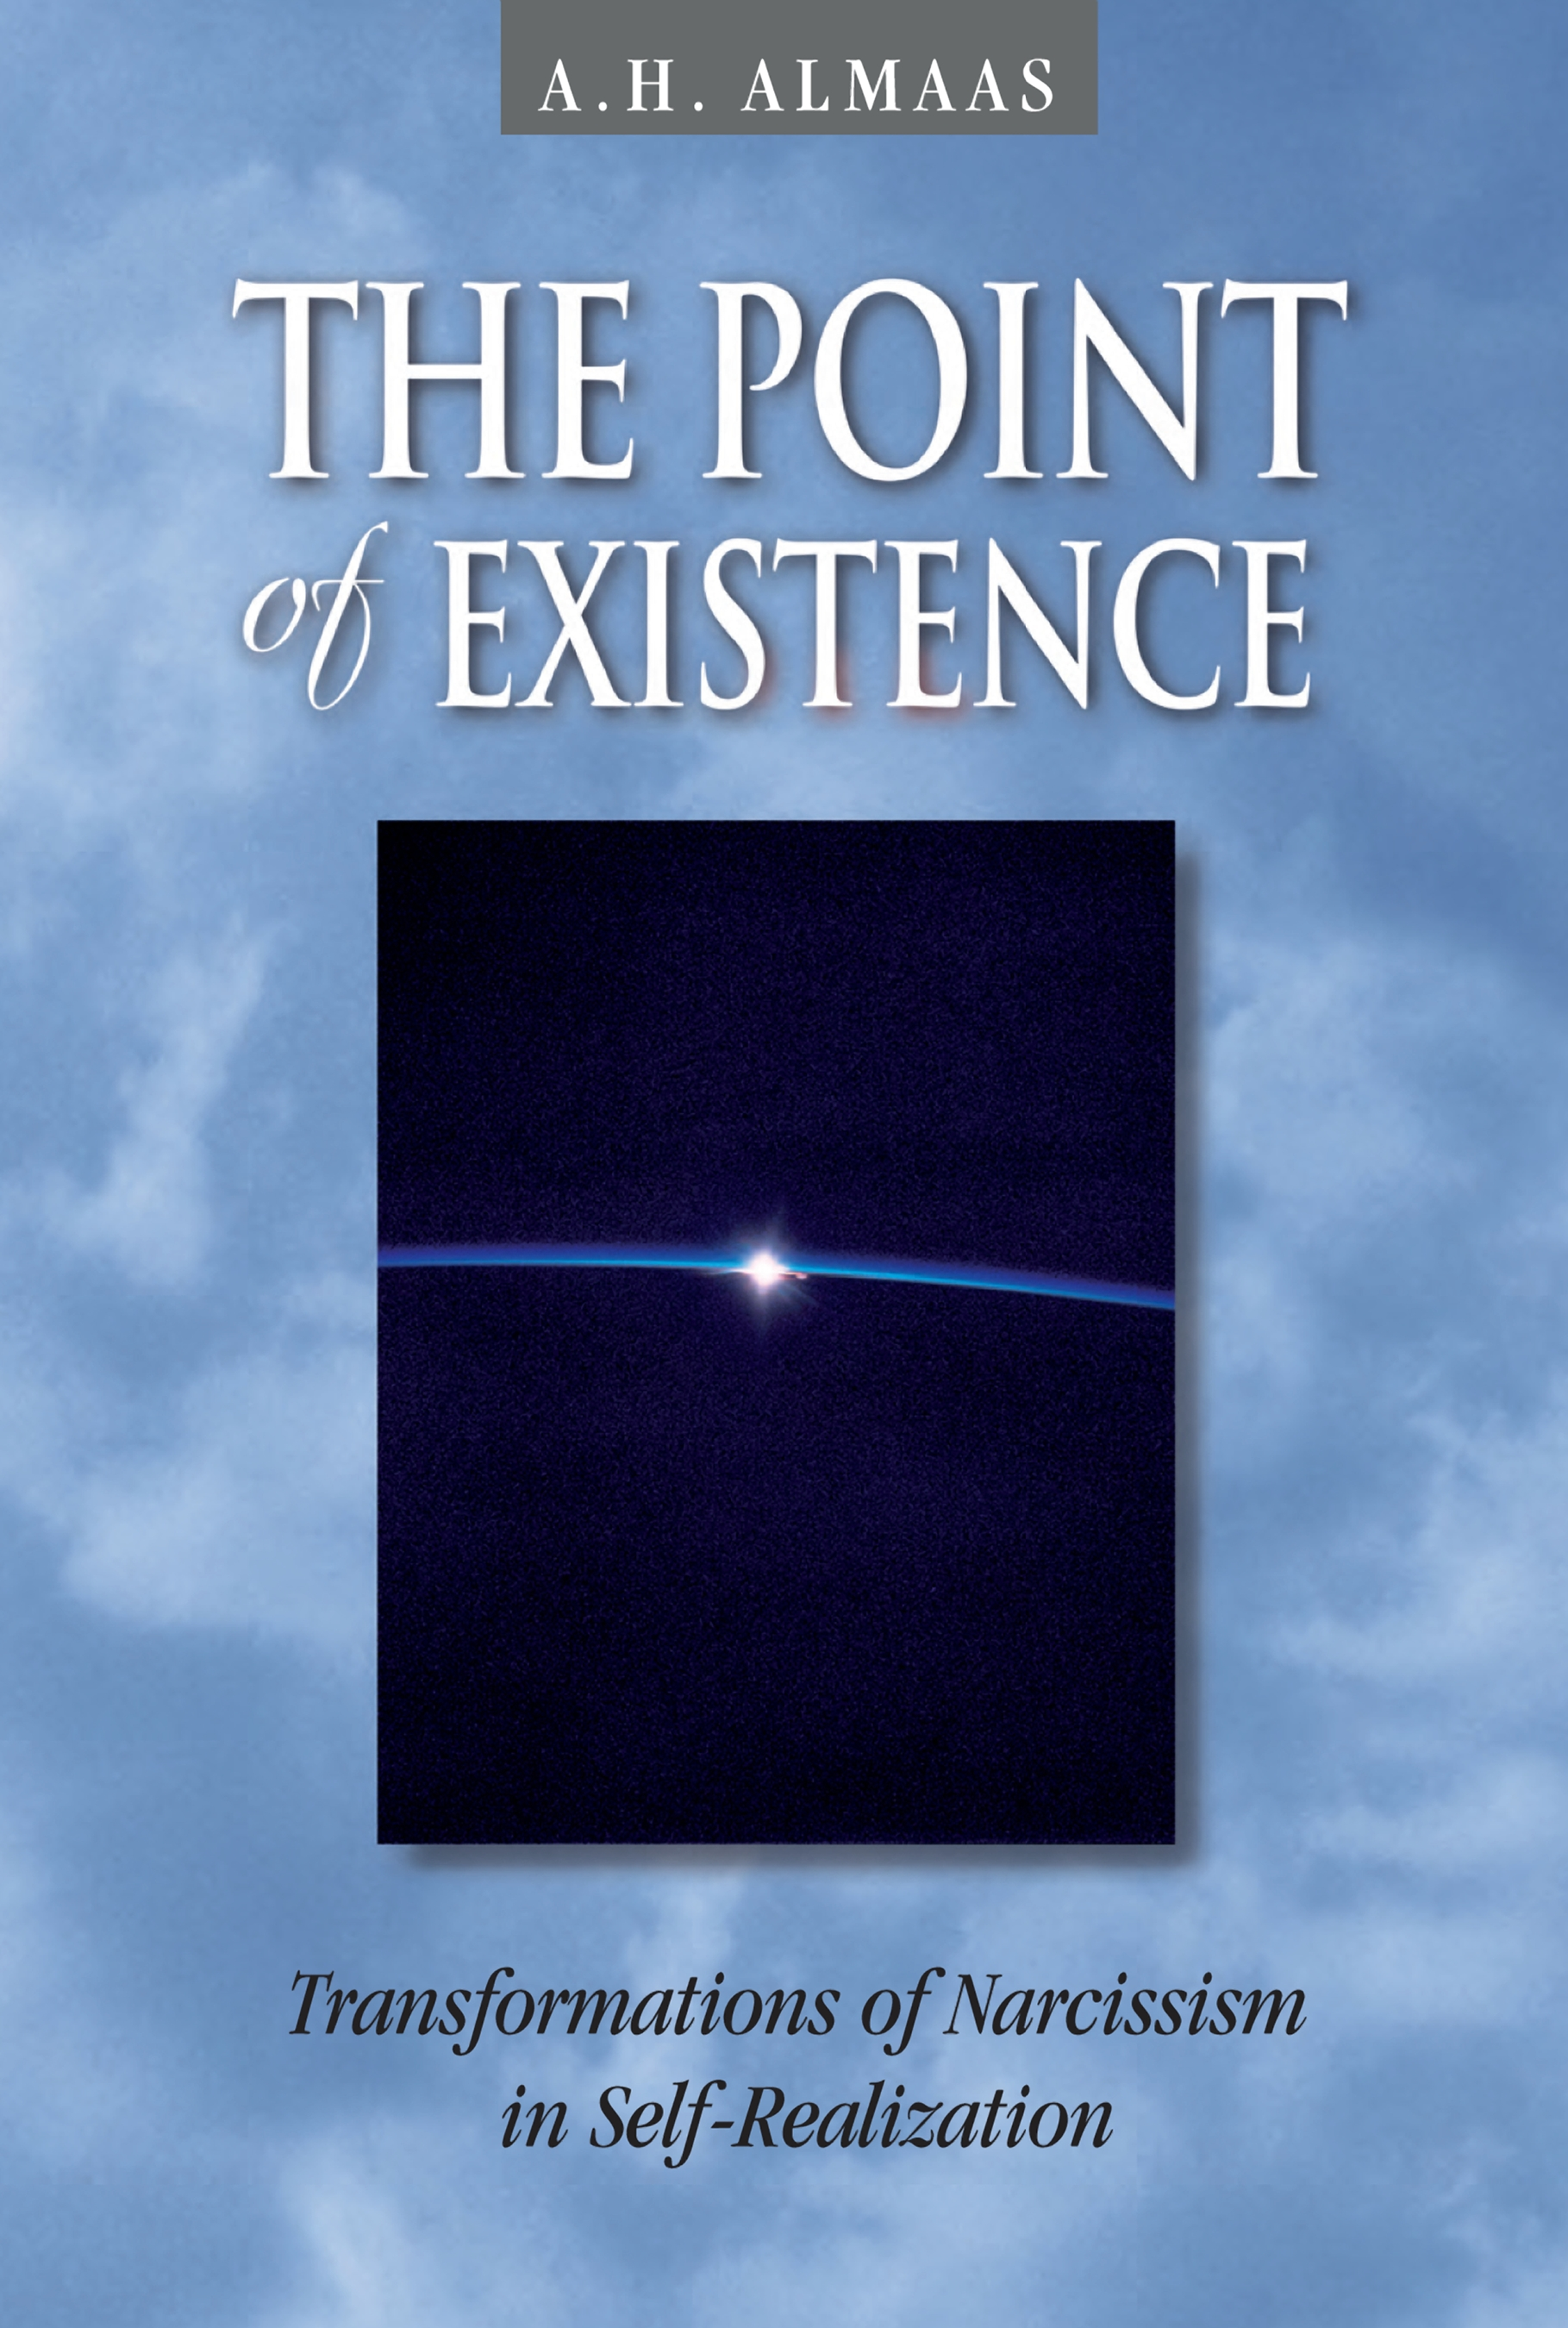 The Point of Existence By: A. H. Almaas